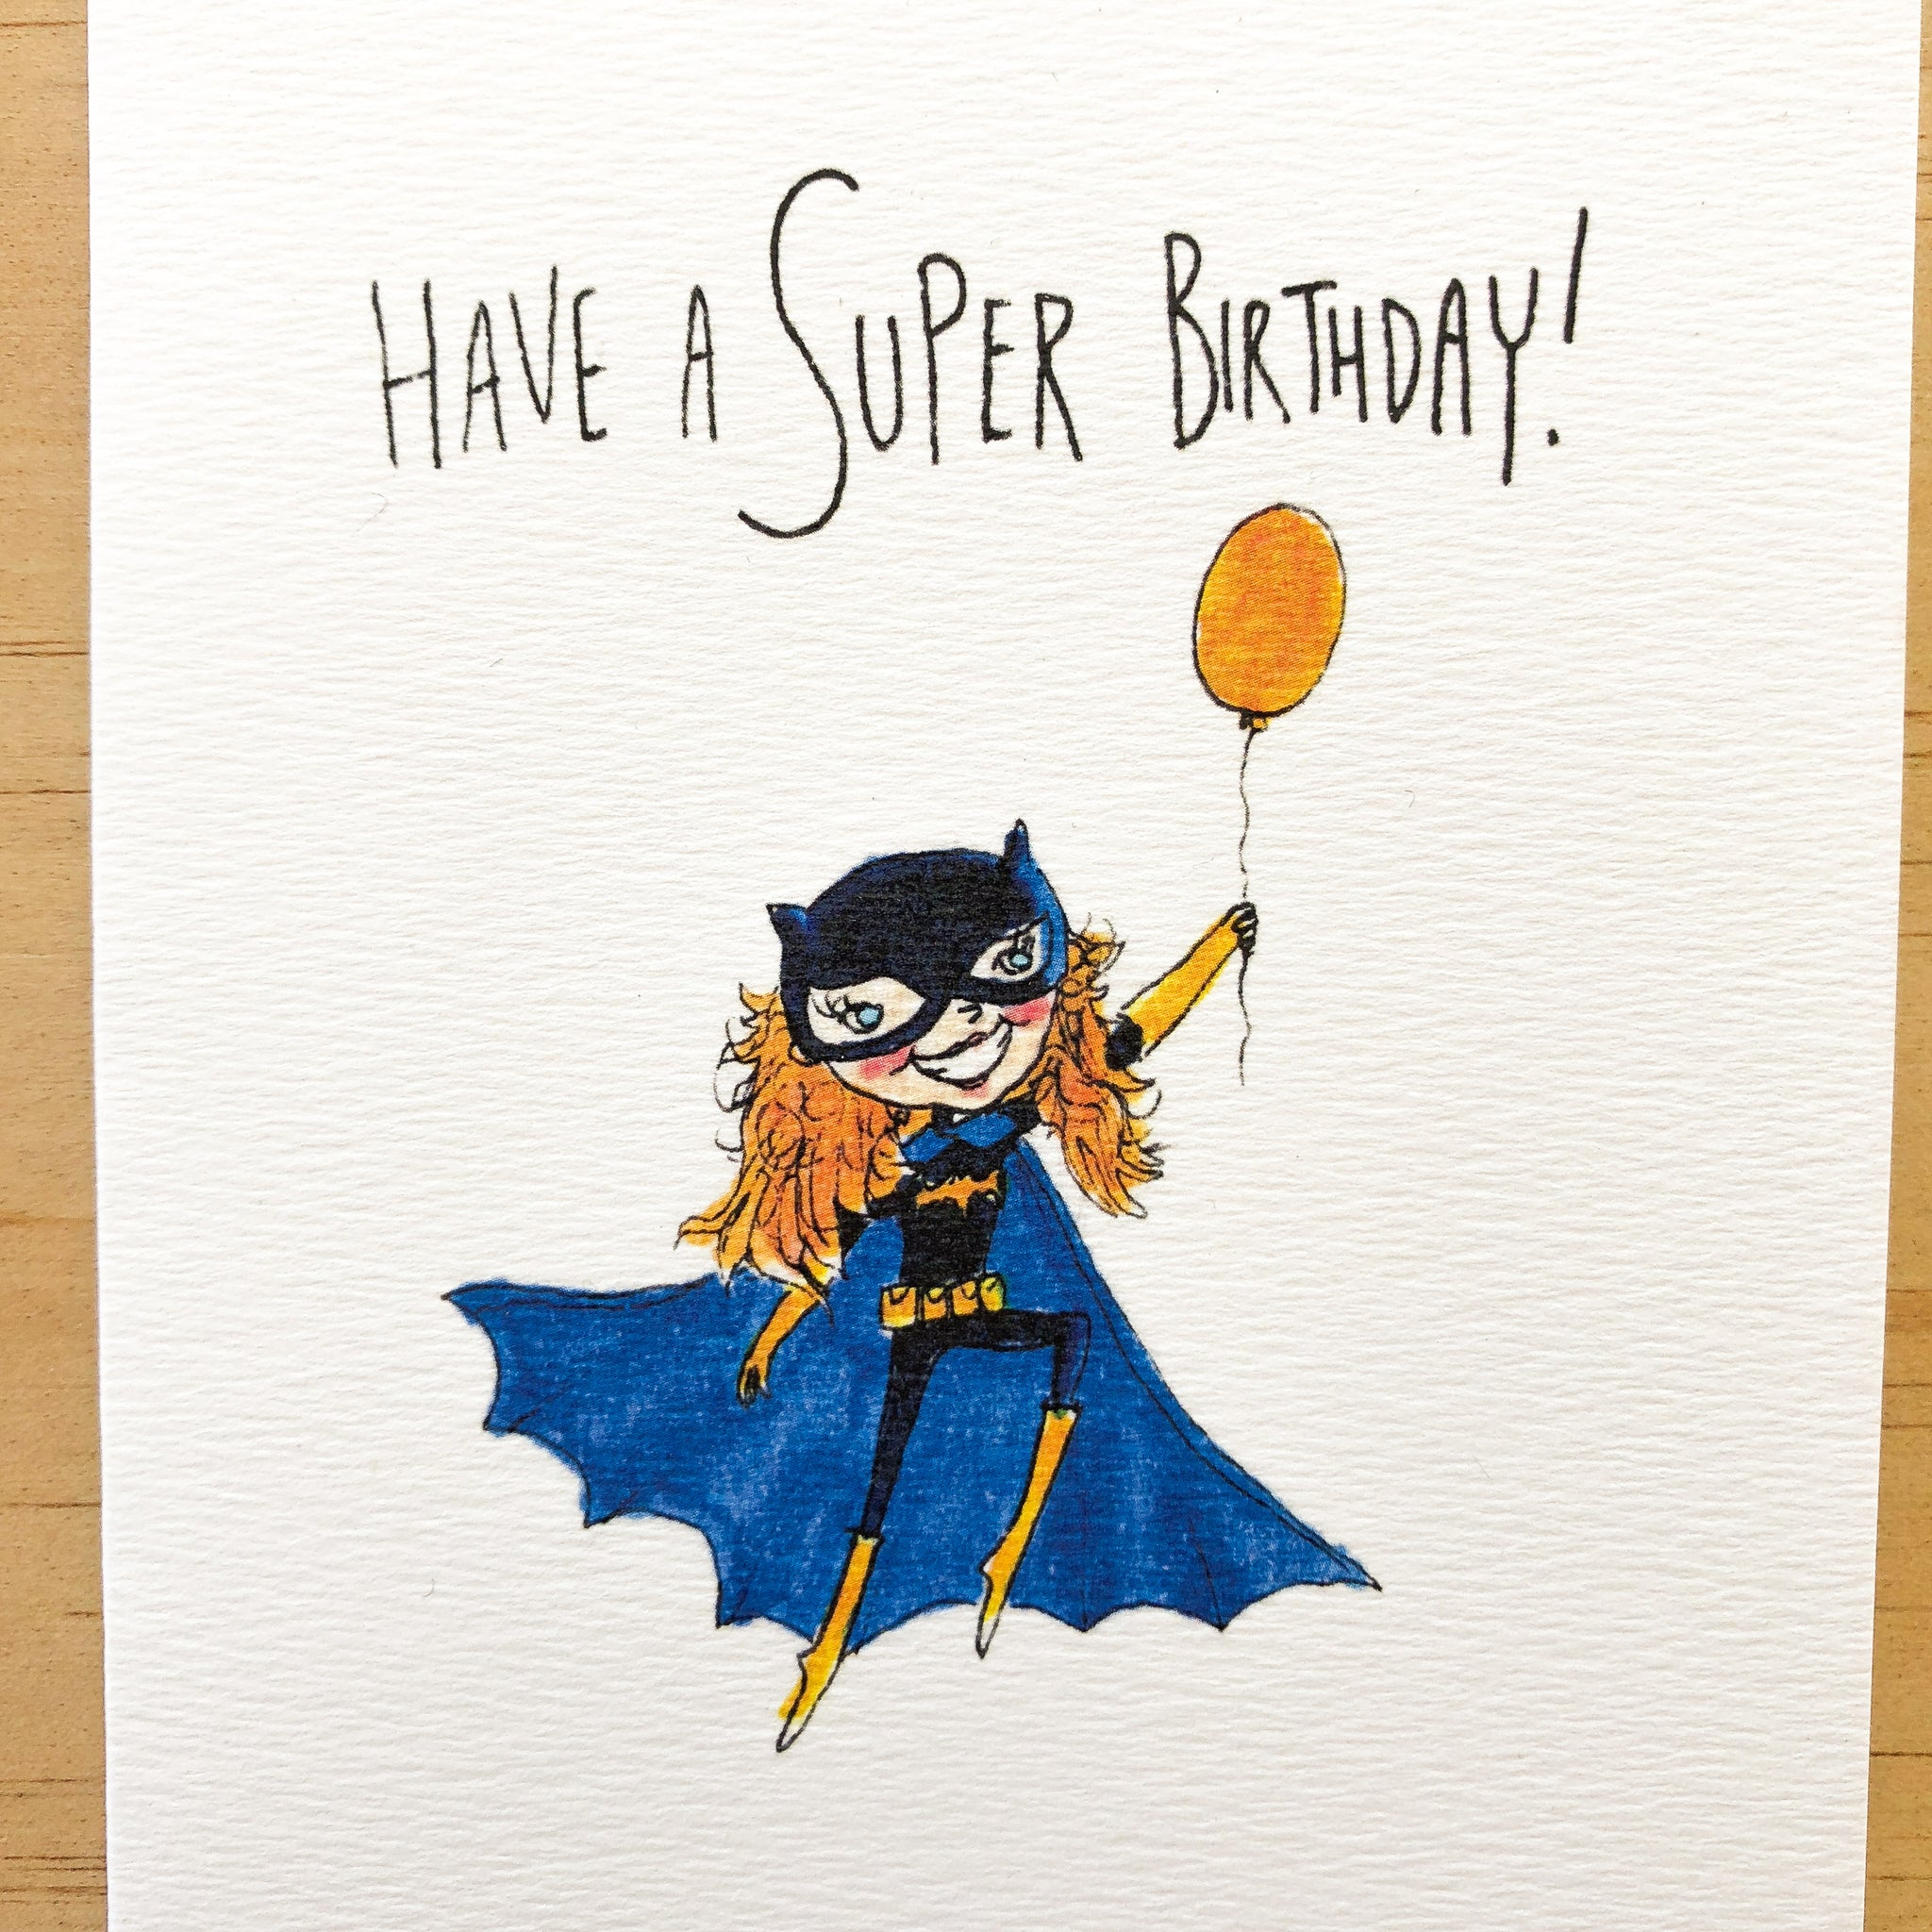 Have a Super Birthday - Well Drawn